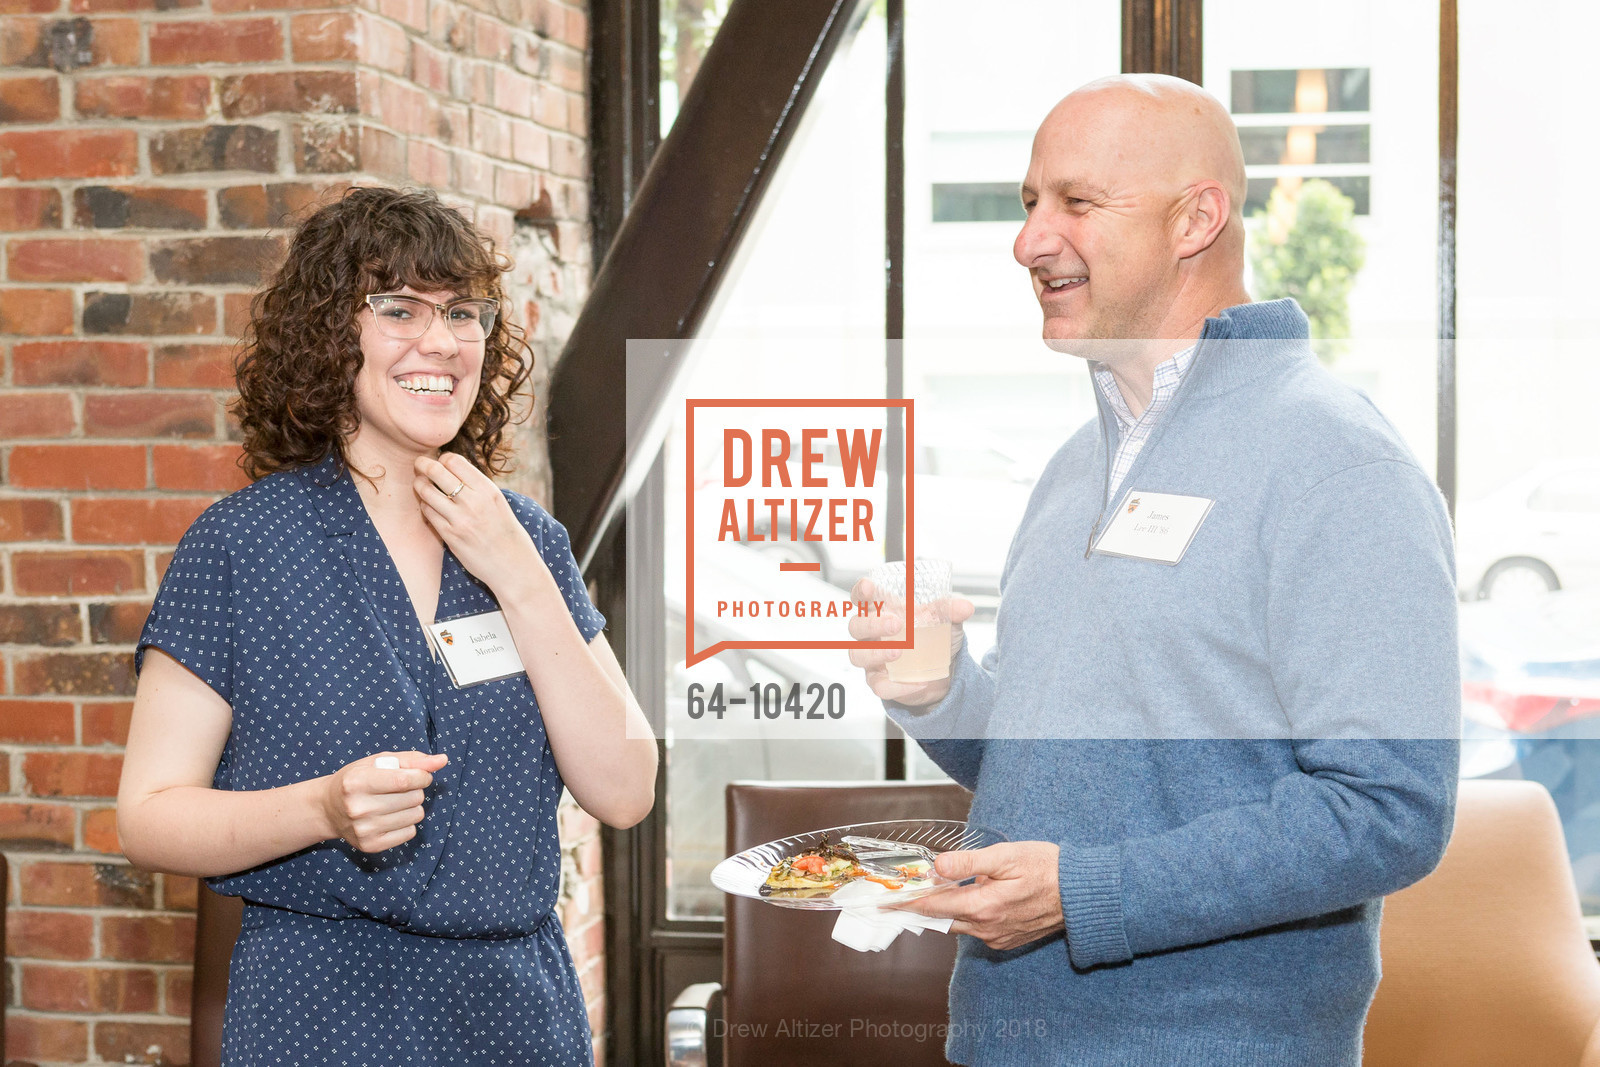 Extras, Princeton club of Northern California Princeton and Slavery talk 2018, April 15th, 2018, Photo,Drew Altizer, Drew Altizer Photography, full-service agency, private events, San Francisco photographer, photographer california